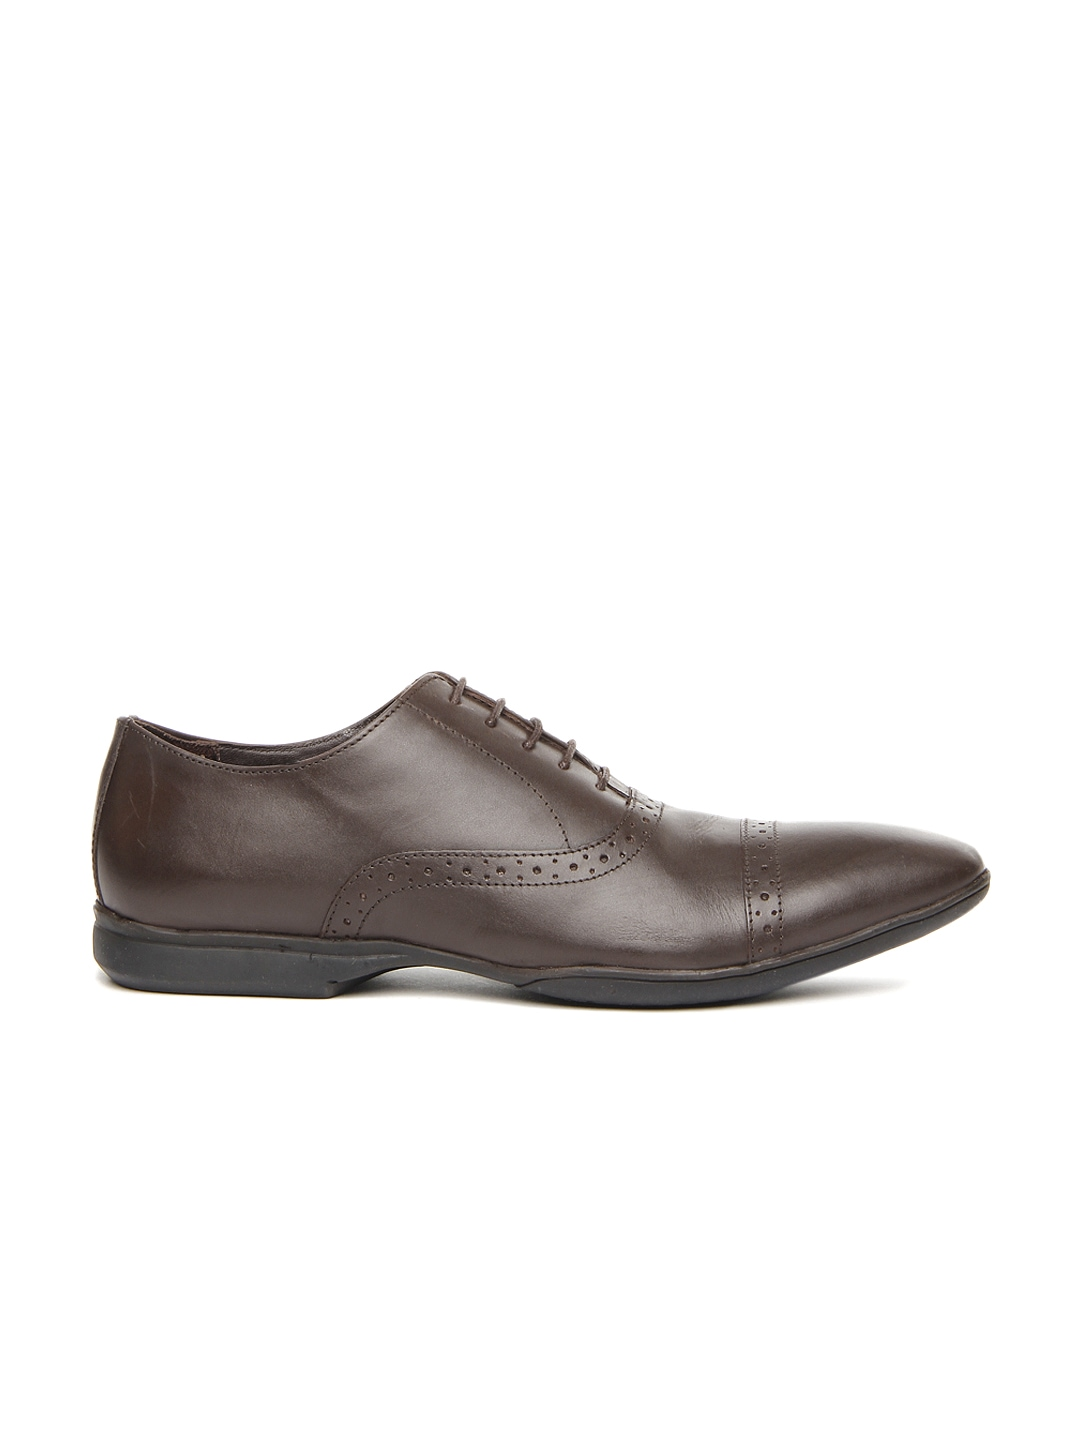 myntra heusen brown leather formal shoes 672424